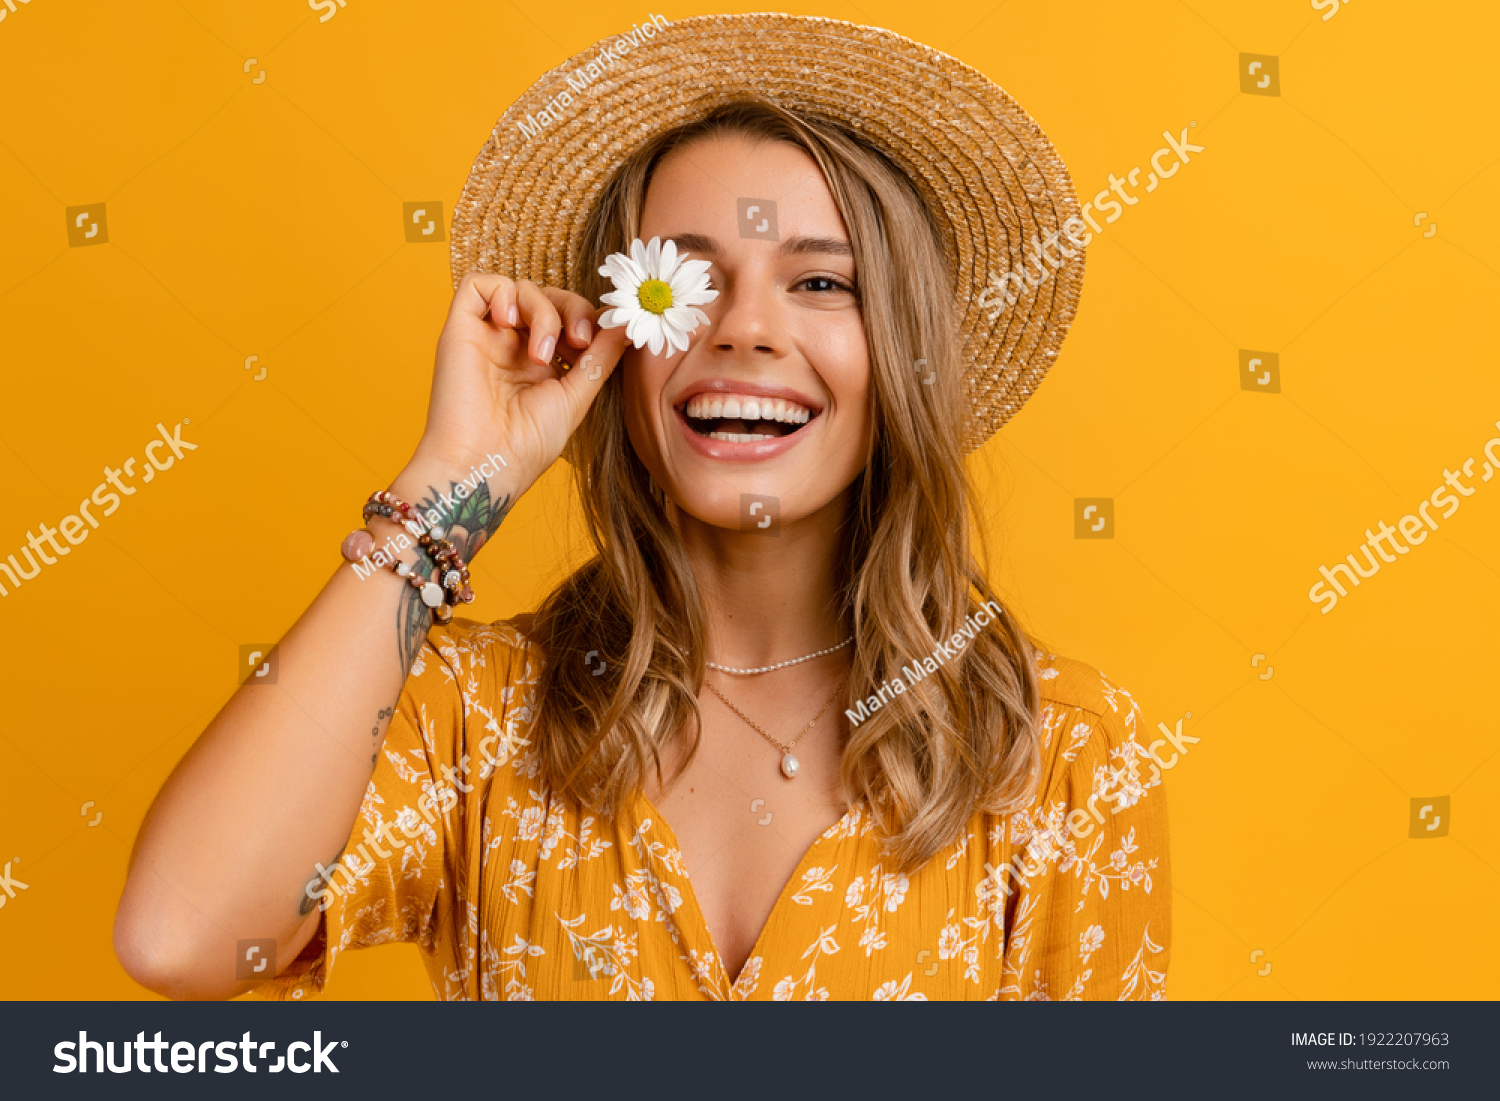 beautiful attractive stylish woman in yellow dress and straw hat holding daisy flower romantic mood posing on yellow background isolated in love summer fashion trend style, natural look #1922207963